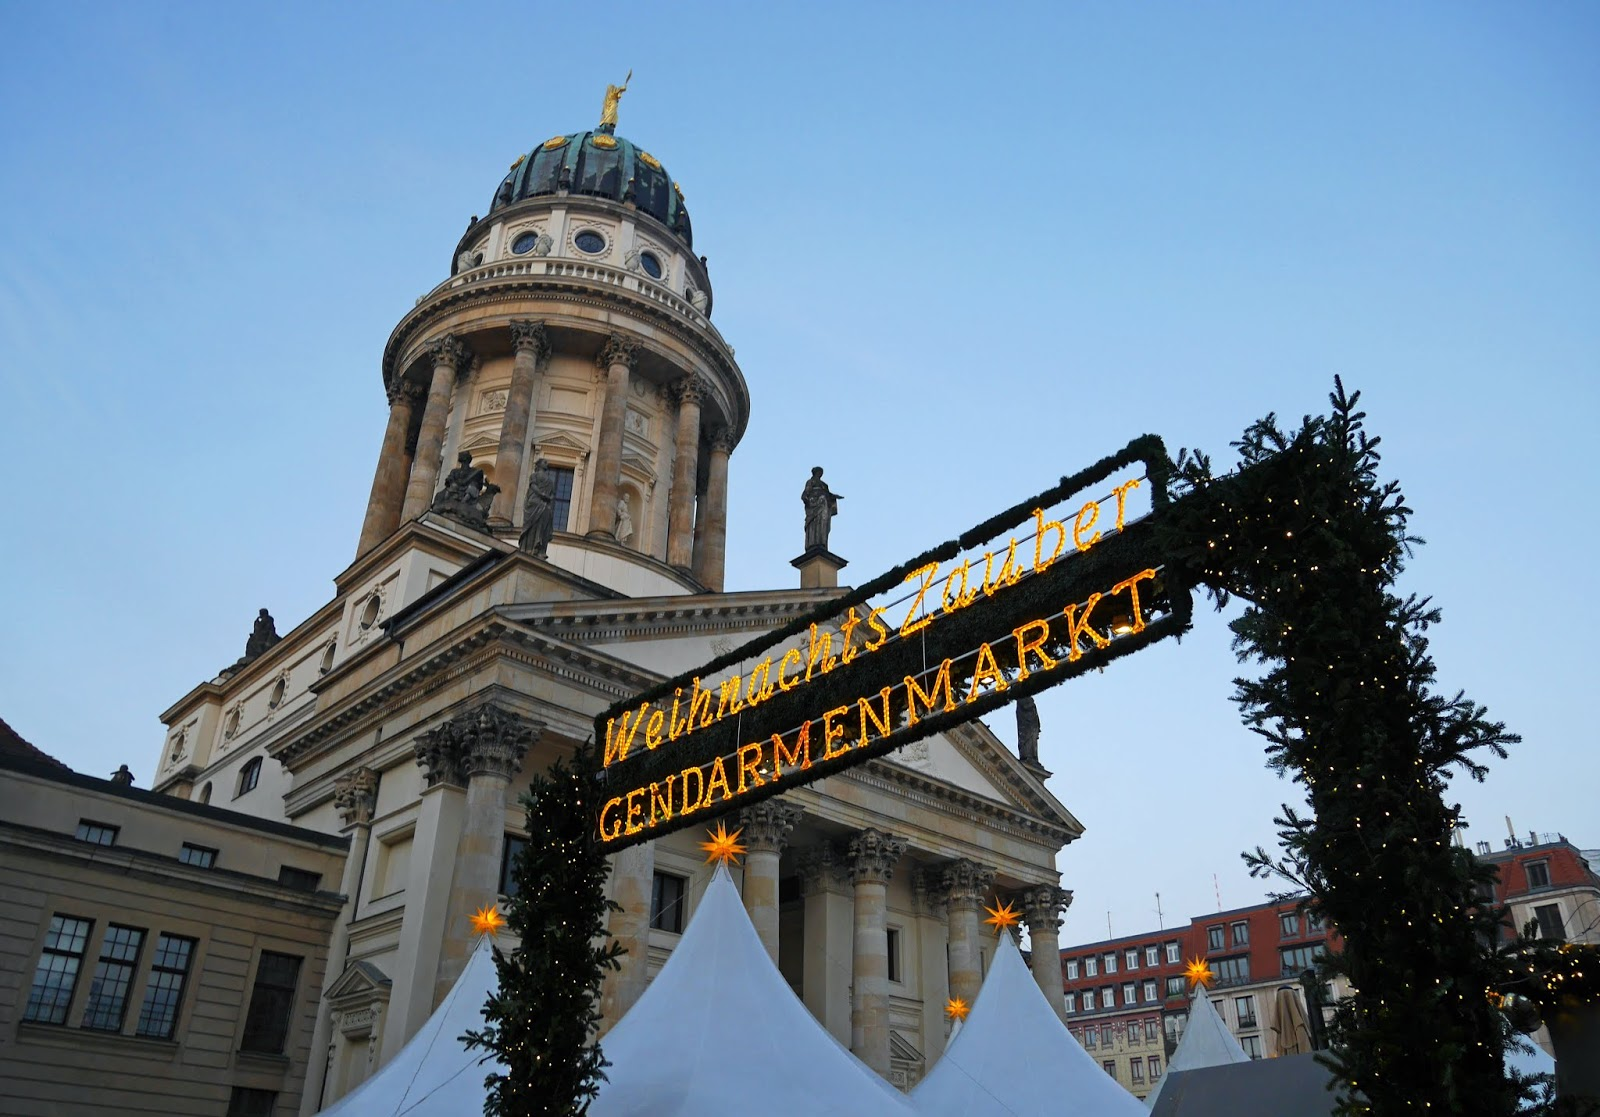 The Christmas Market at the Gendarmenmarkt, Berlin